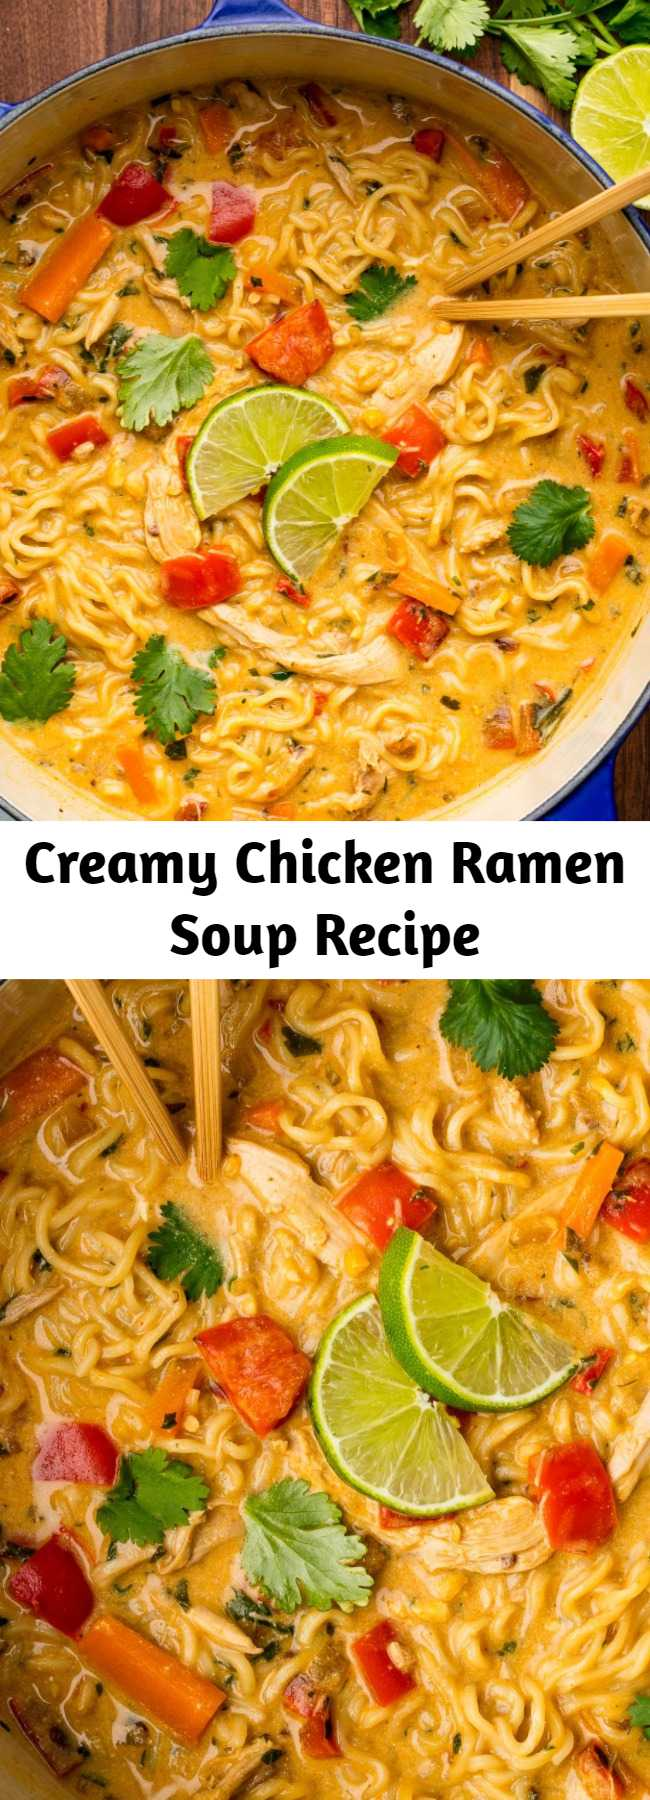 Creamy Chicken Ramen Soup Recipe - Looking for an easy ramen chicken noodle? This Creamy Chicken Ramen Soup is the best. This recipe packs a flavorful punch and then some! You get some spiciness from the curry powder, a rich creaminess from the coconut milk and if you top that of with a squeeze of lime, you have a chicken soup that will ambush your taste buds.